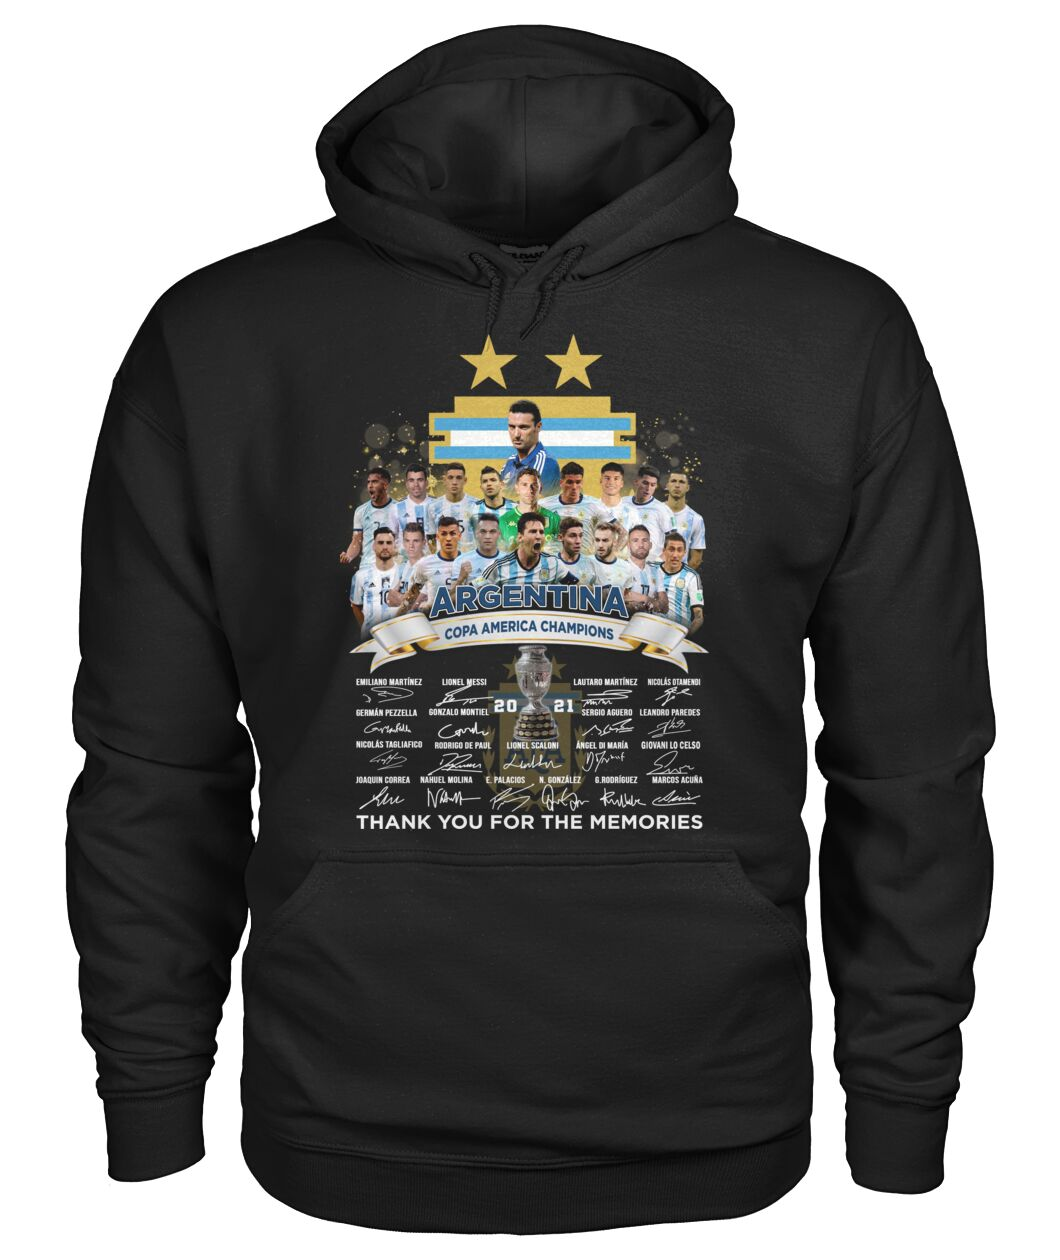 Argentina copa america champions 2021 thank you for the memories shirt 14